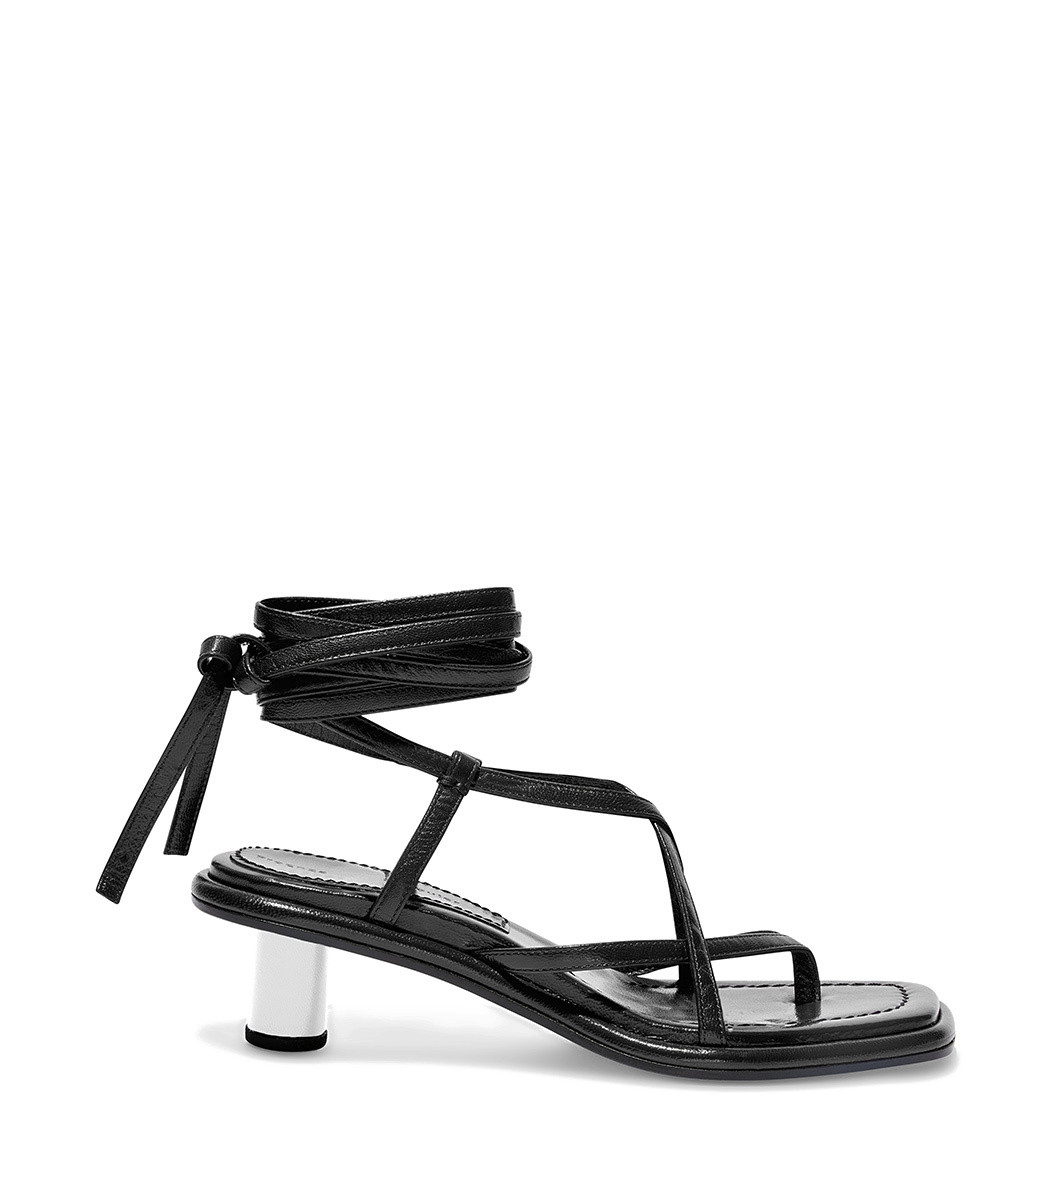 537418d54cd Proenza Schouler Strappy Mid Heel Sandals In Black